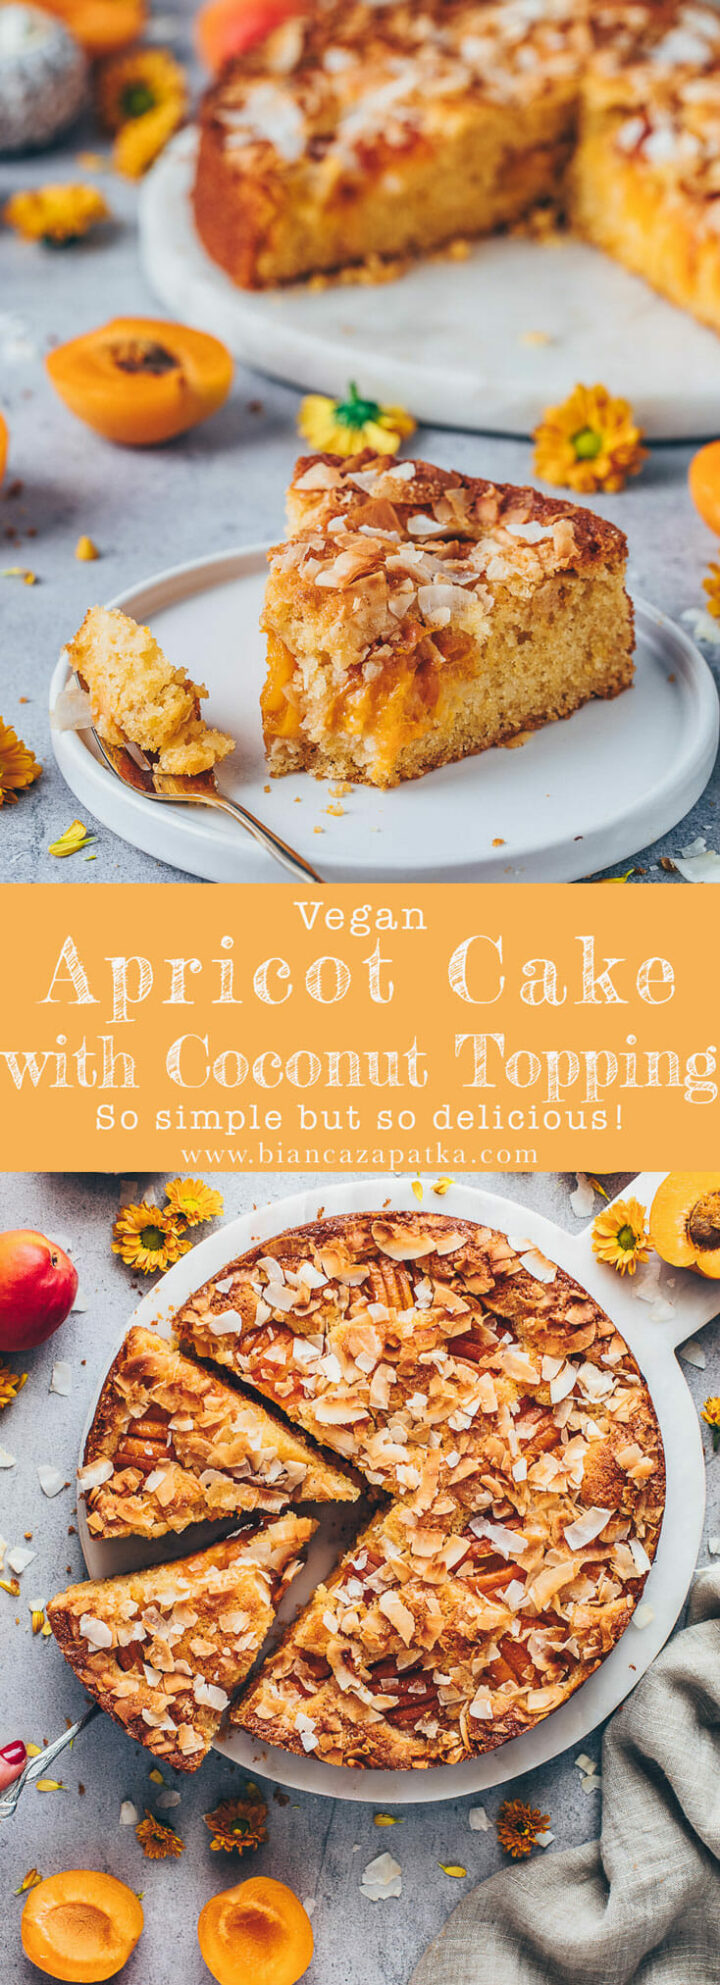 apricot cake with coconut topping